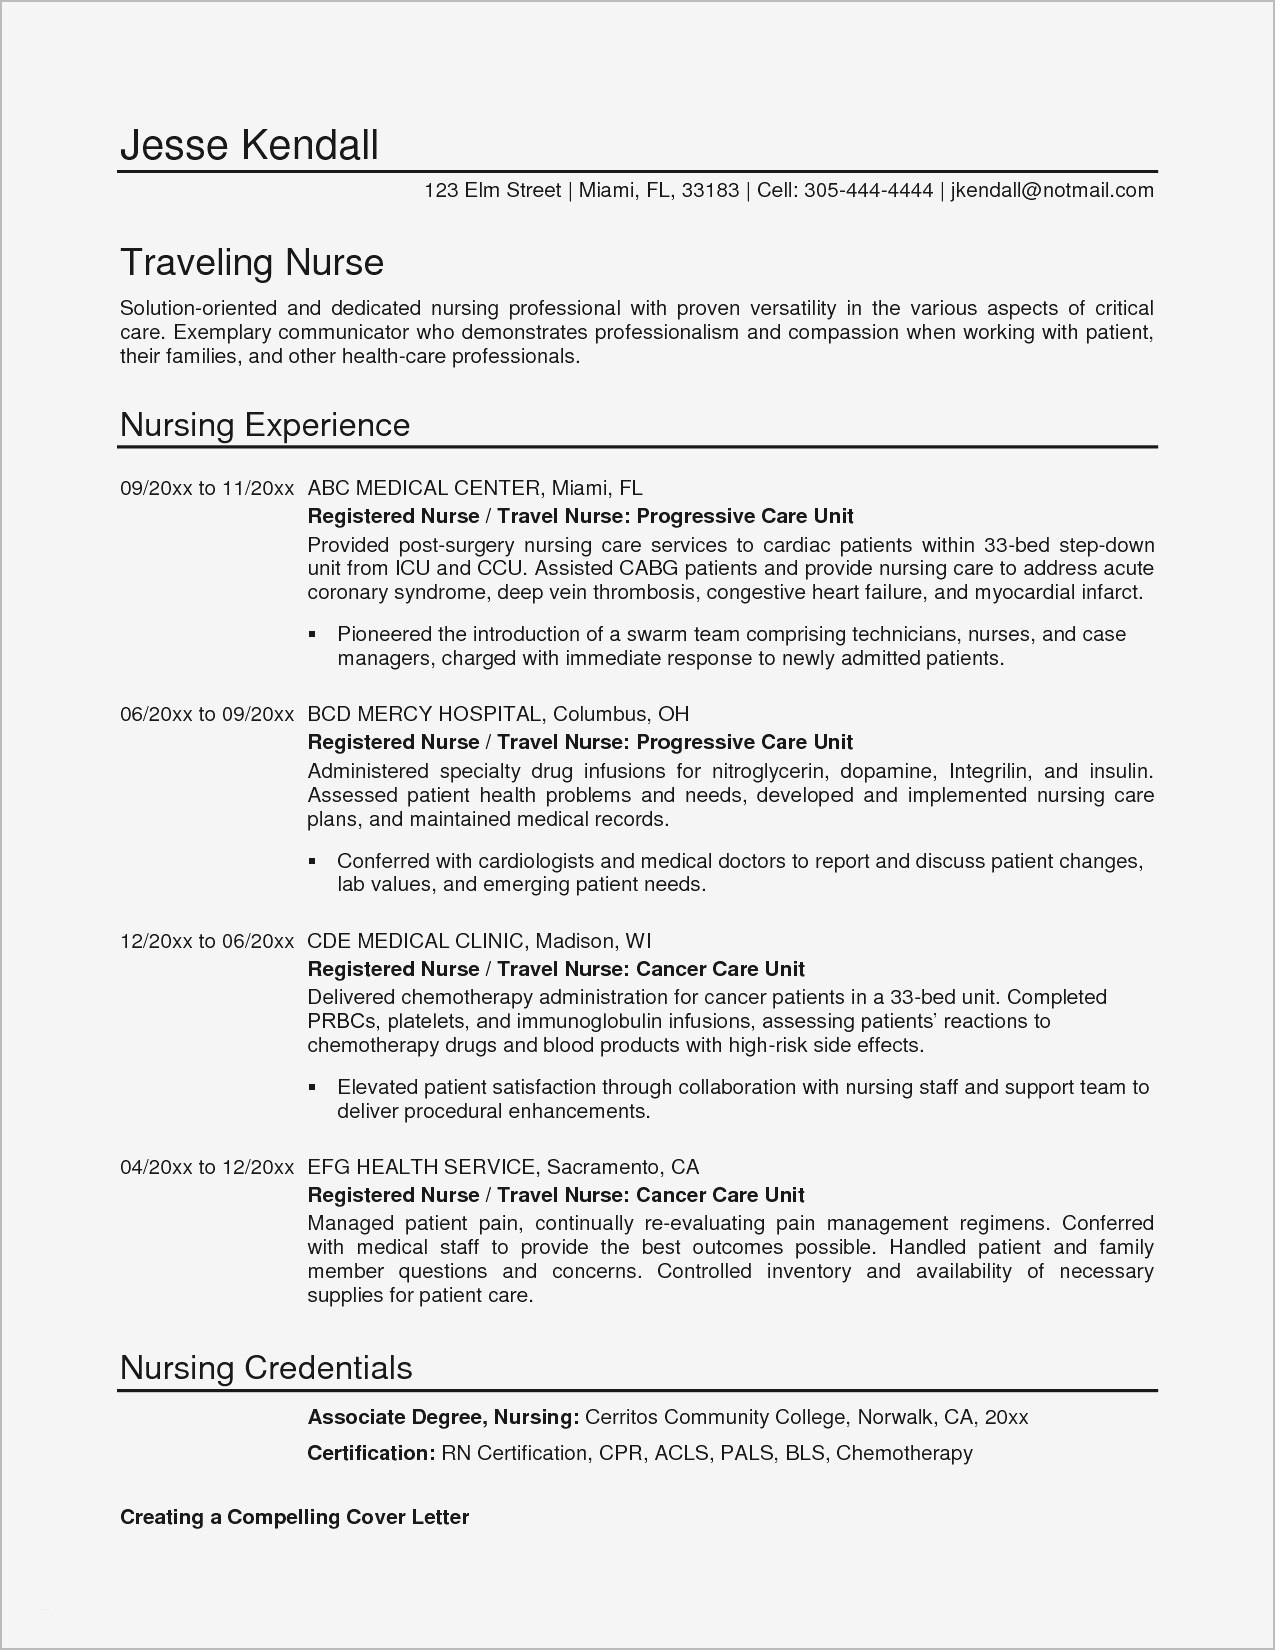 Nursing Cover Letter Template New Grad - Surprising New Grad Rn Cover Letter Templates